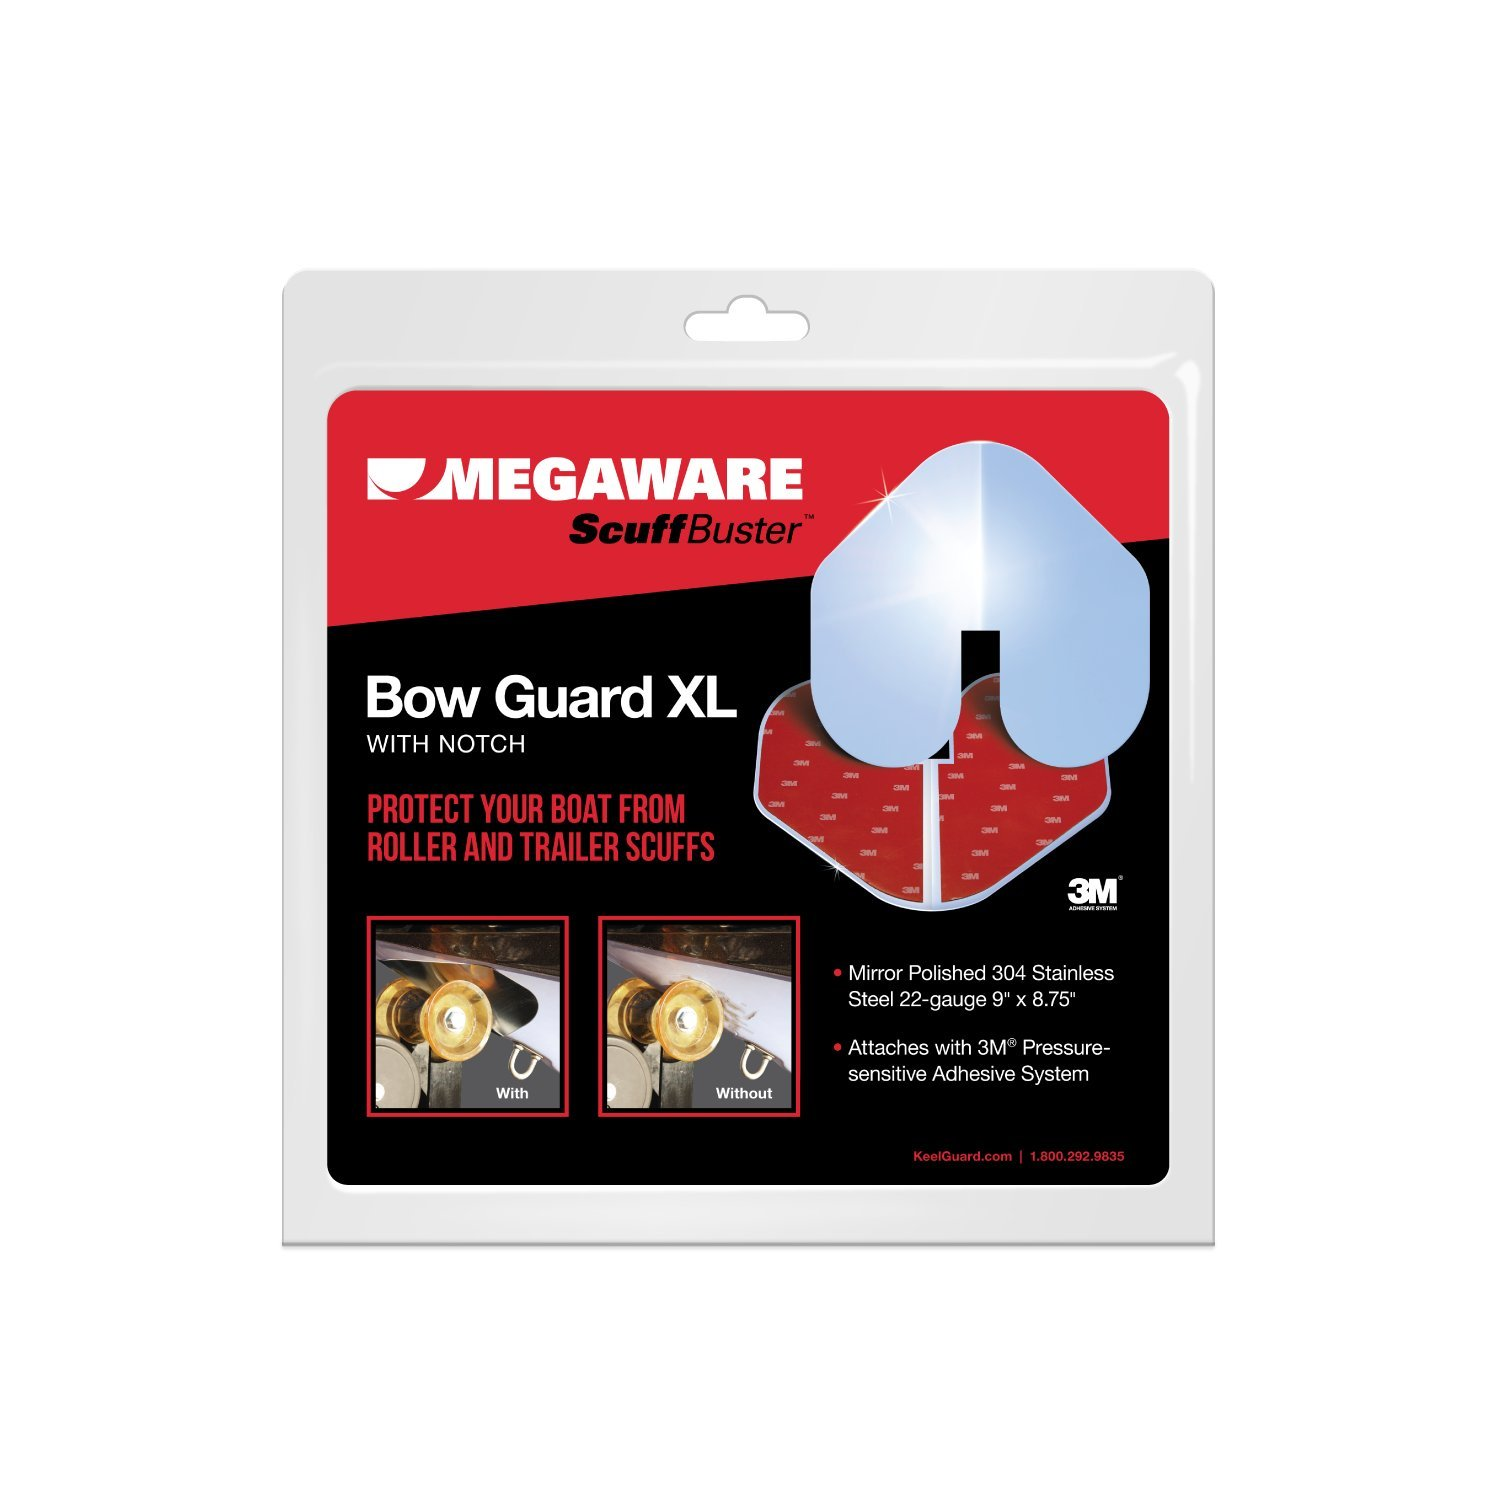 ScuffBuster by Megaware Bow Guard XL (notched)